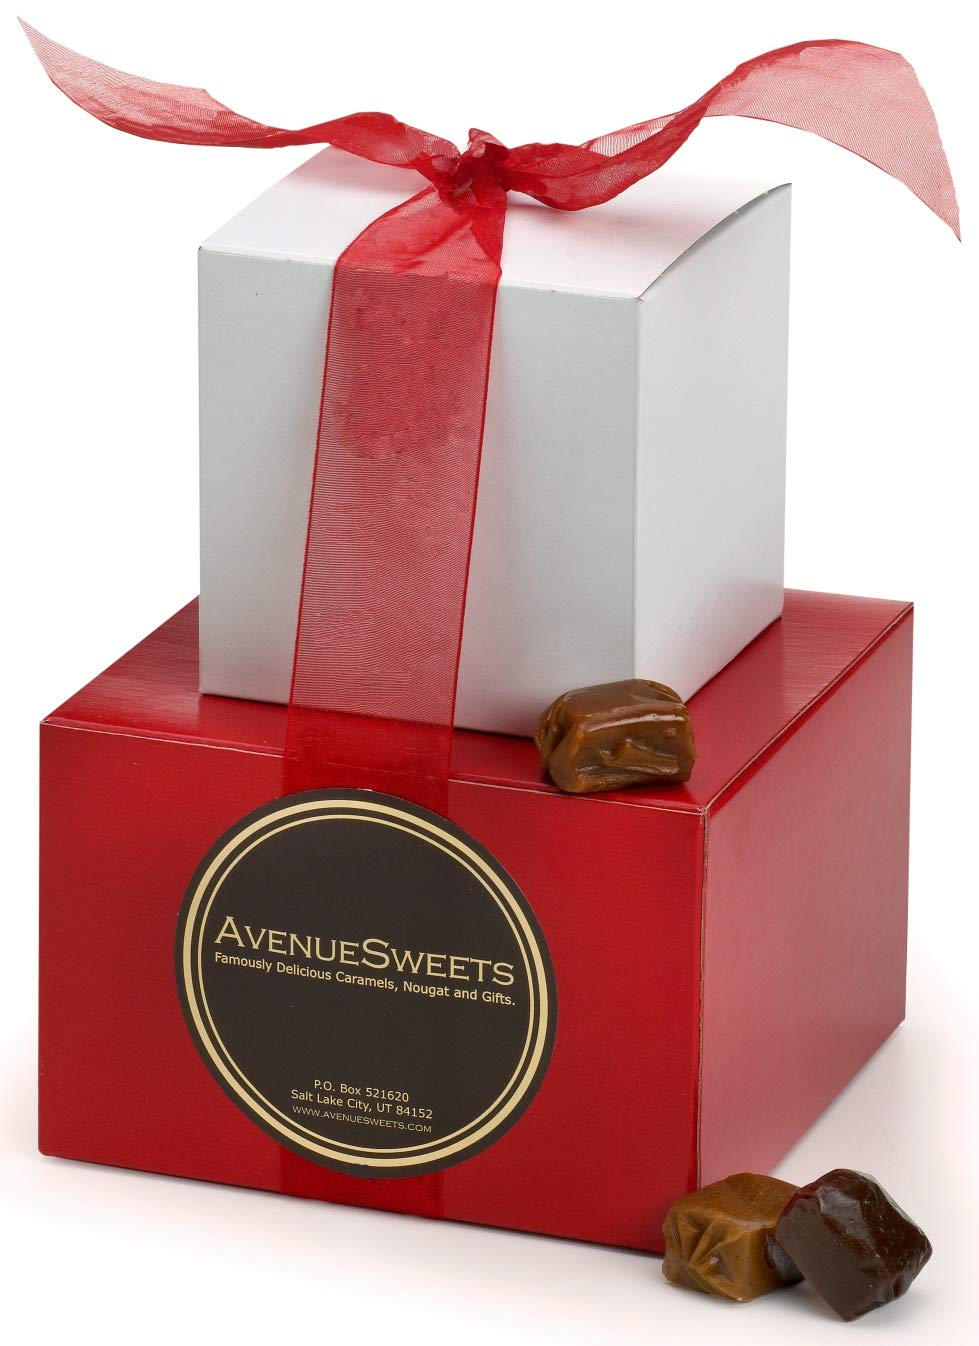 AvenueSweets - Handcrafted Individually Wrapped Soft Caramels - Red/White 2 lb Gift Tower - Customize Your Flavors by AvenueSweets